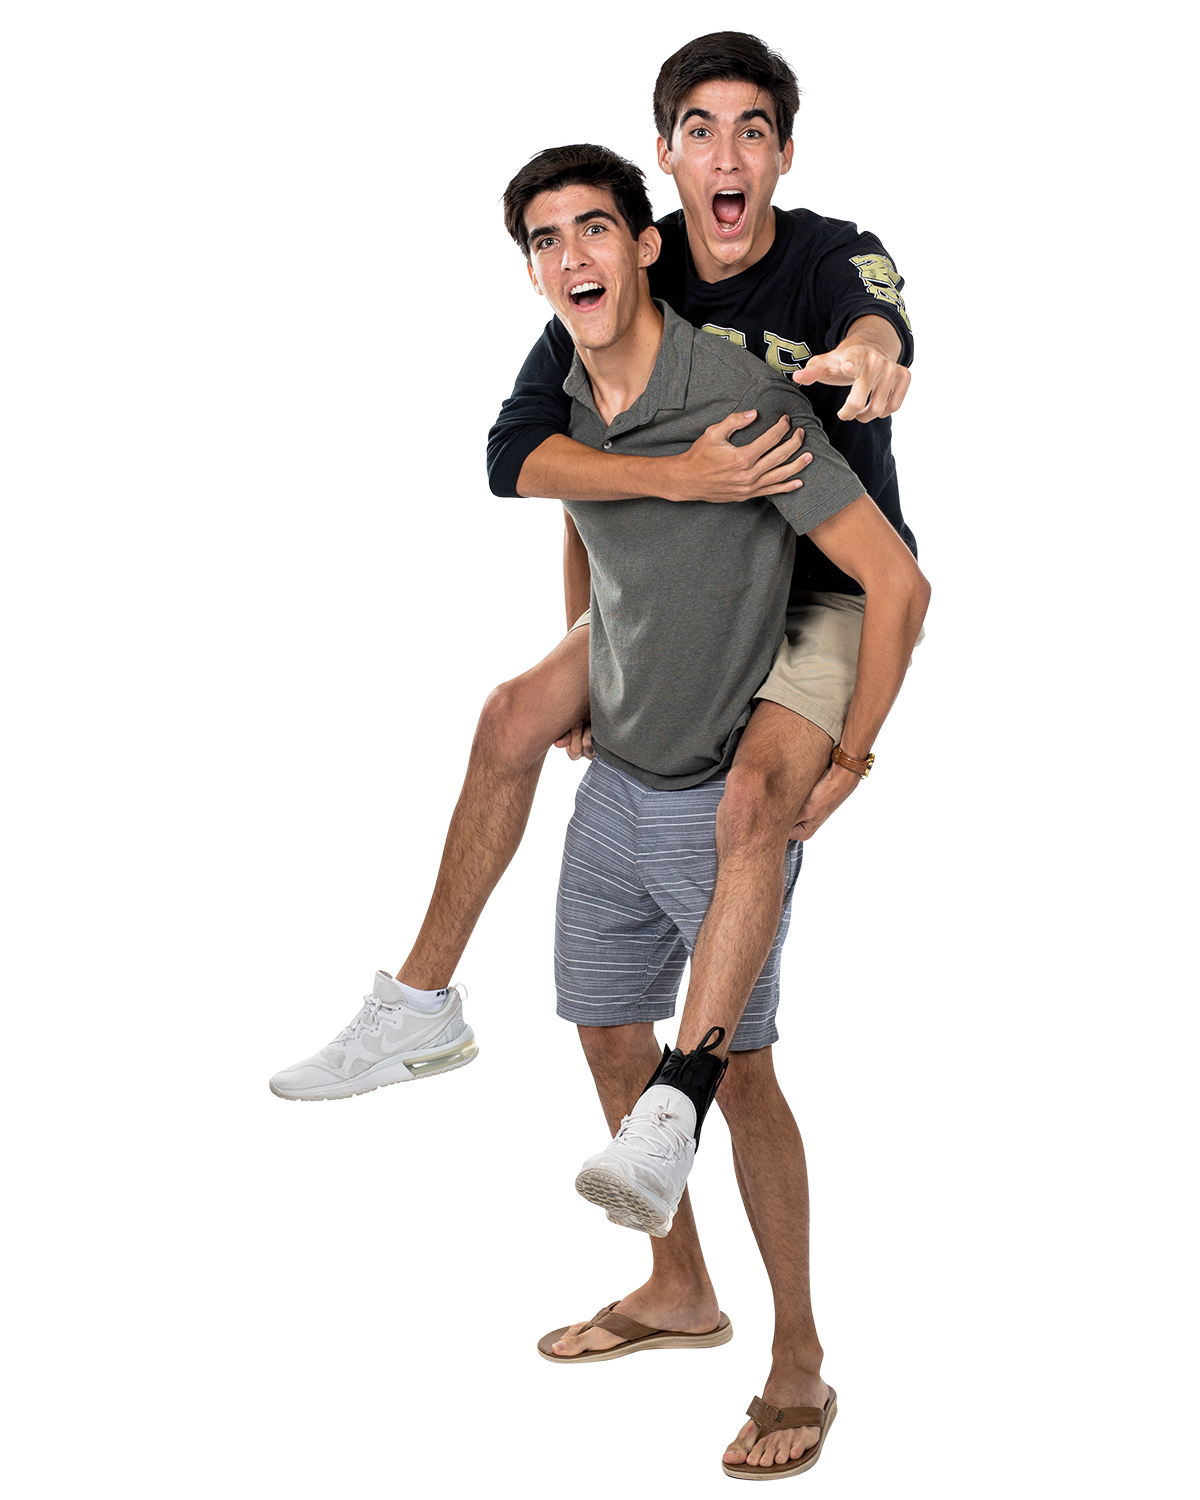 A man holds his twin who is pointing at the camera on his back.